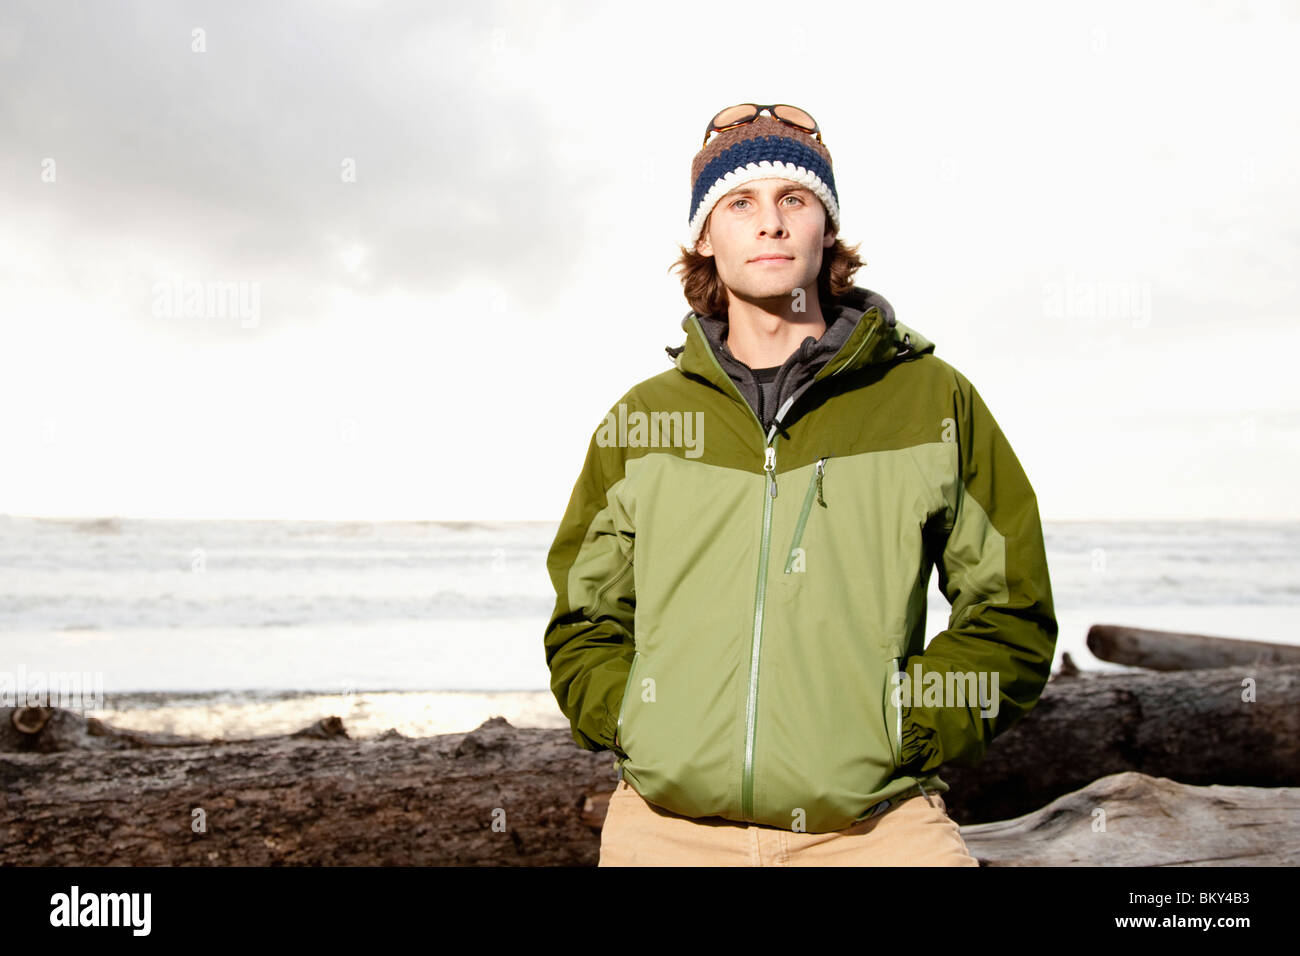 Portrait of young, outdoorsy man in jacket and hat while hiking at La Push Beach, Washington. - Stock Image